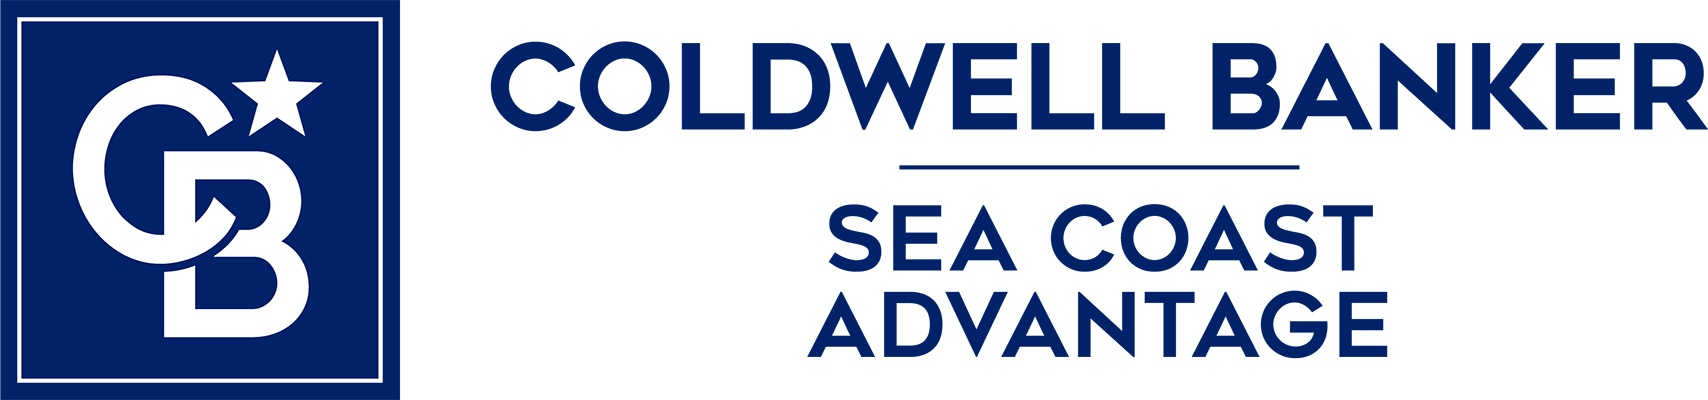 Glenda Newell - Coldwell Banker Sea Coast Advantage Realty Logo